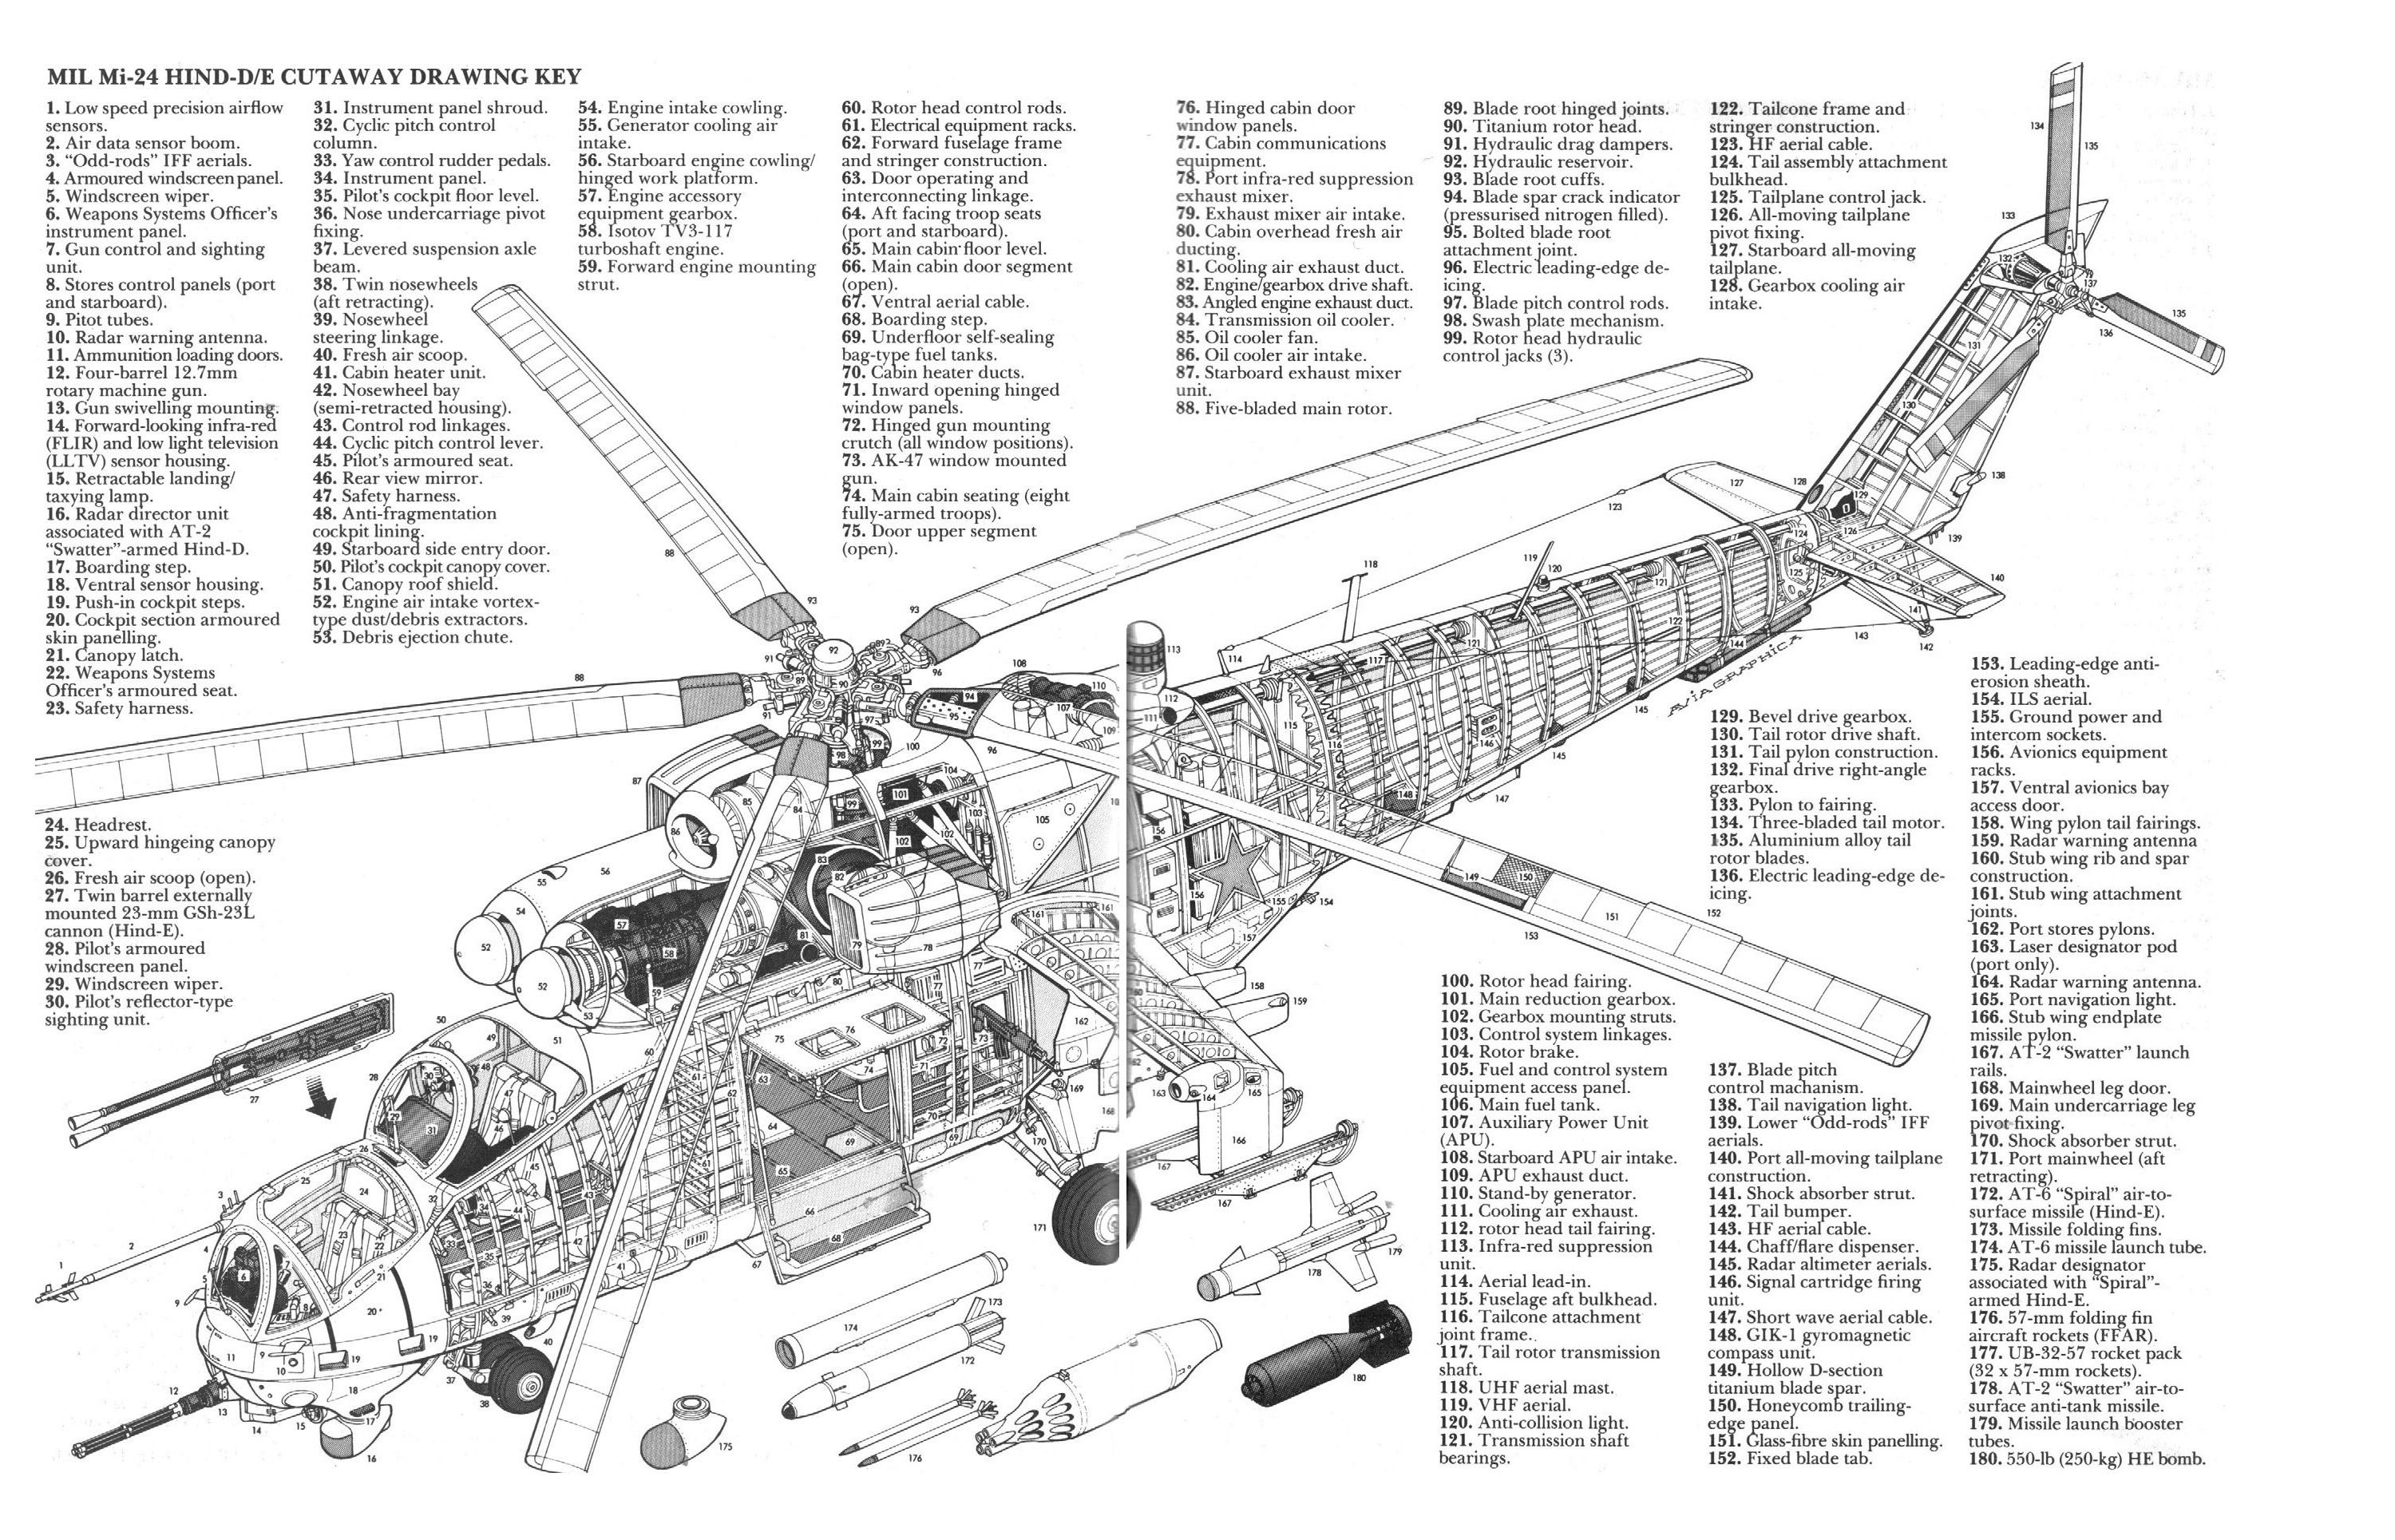 aviation engineering schematics wiring library oil production schematic helicopters mi 24 aviation helicopter schematics schematic diagram texts military wallpaper 3000x1929 85308